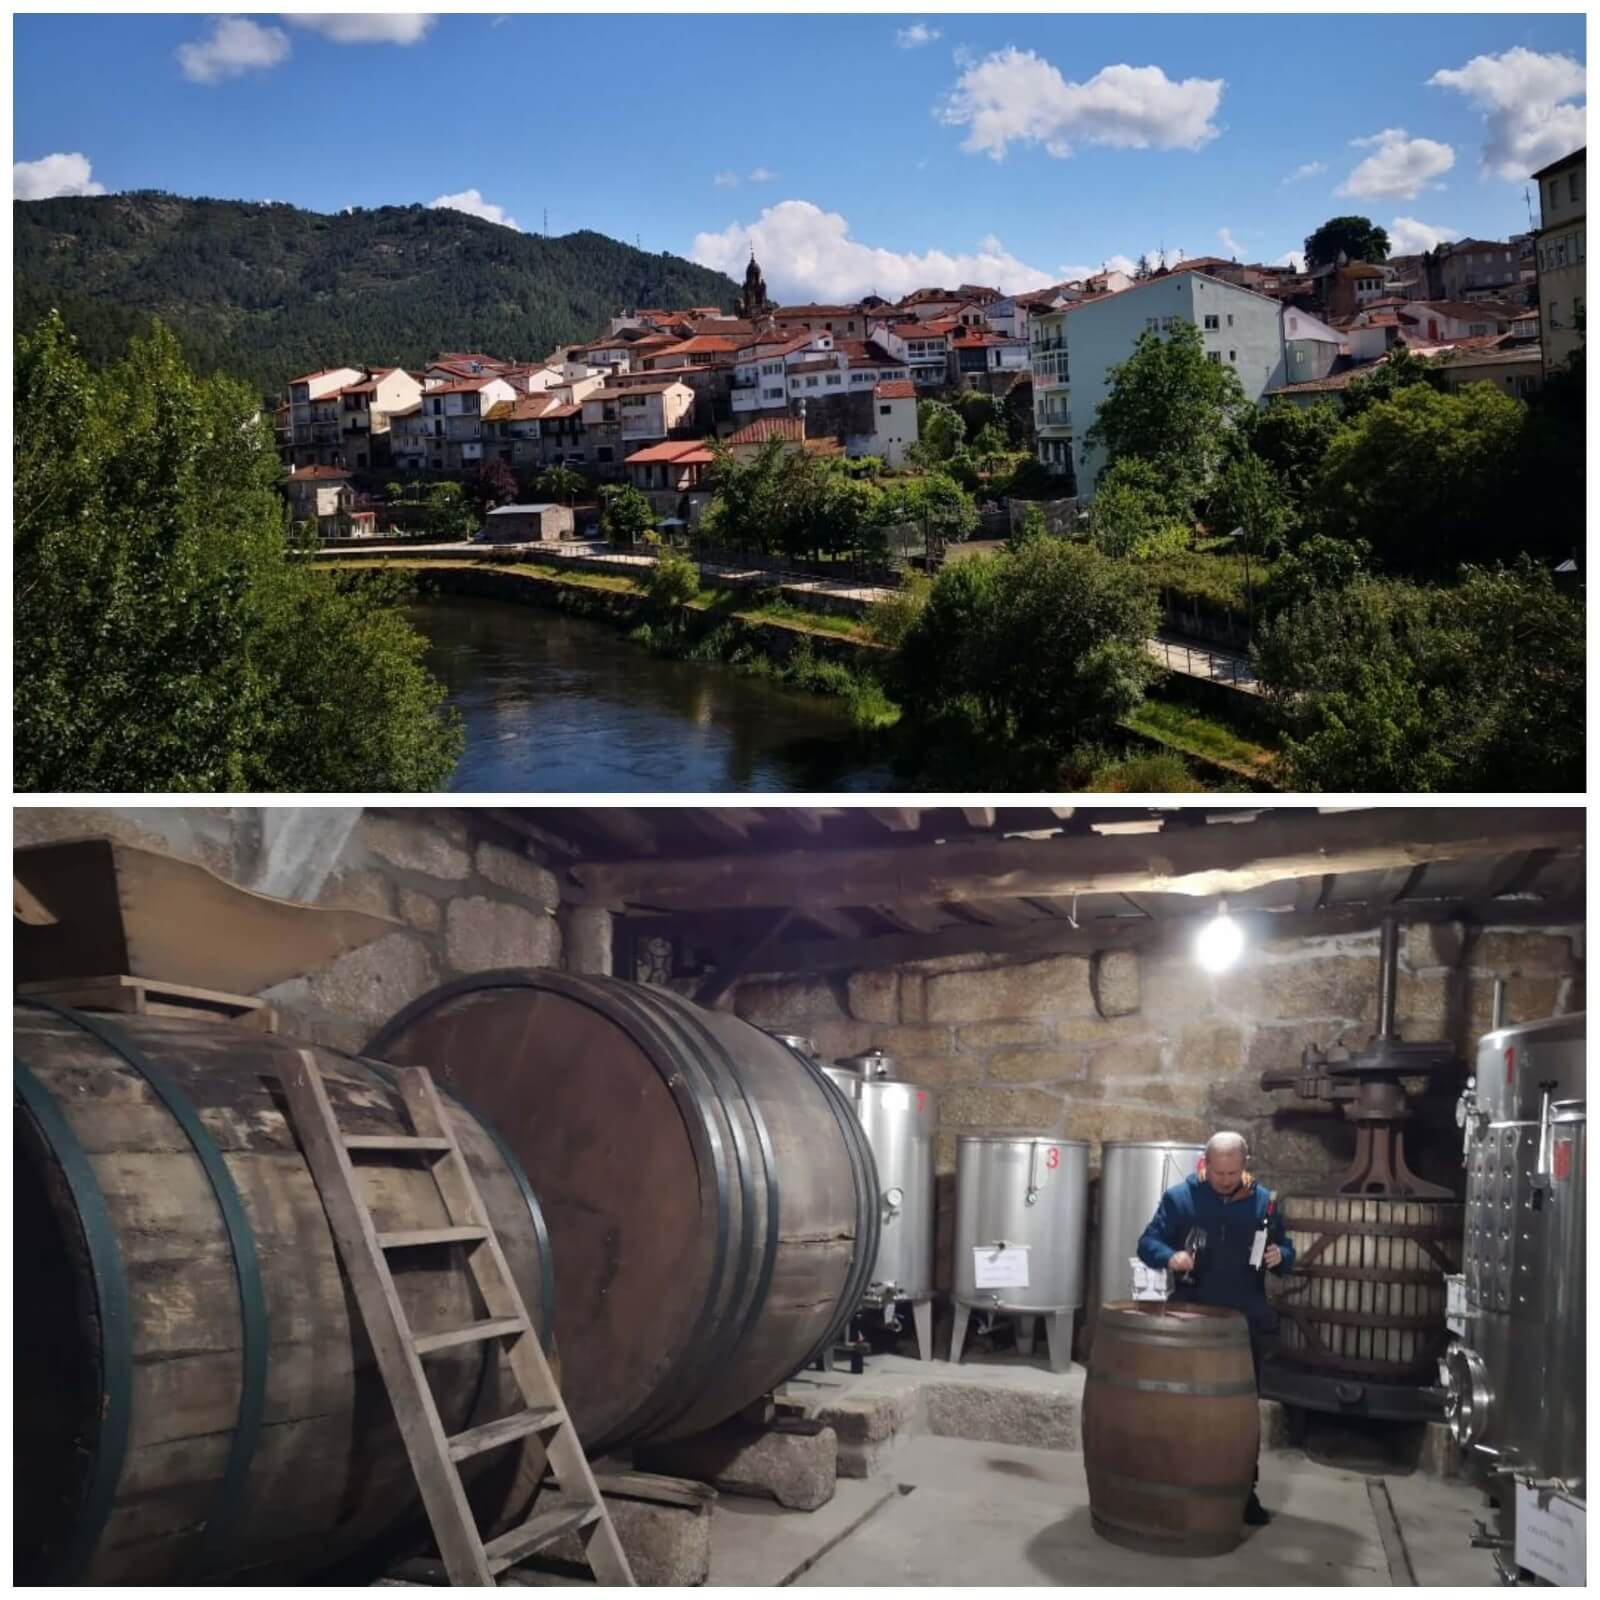 12 Recommended Camino de Santiago Tours 2021 Holy Year - 4. Camino do Vino in Ribeiro Wine Country